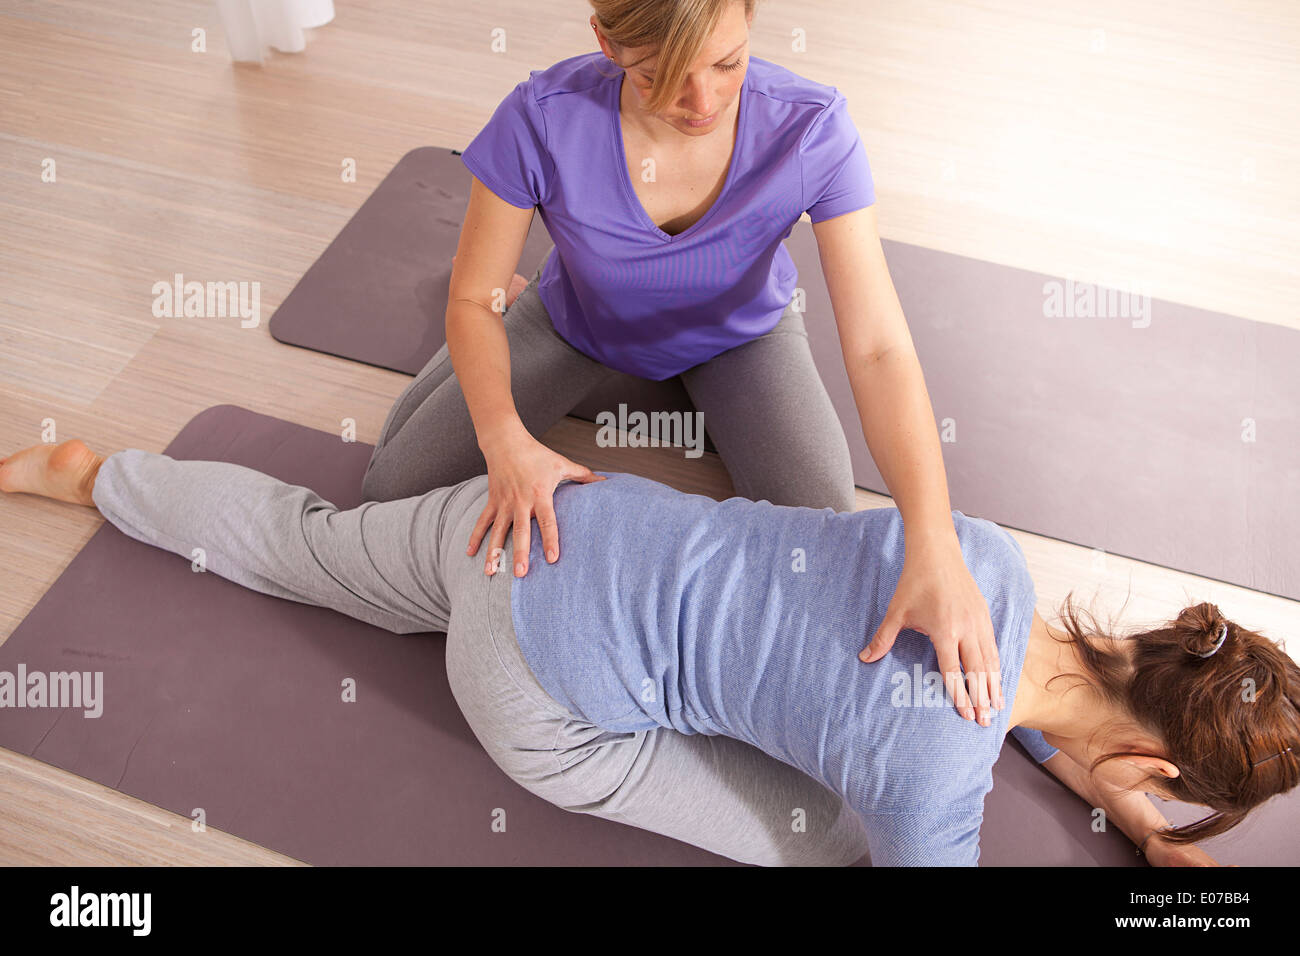 Physical therapist adjusting woman's back - Stock Image